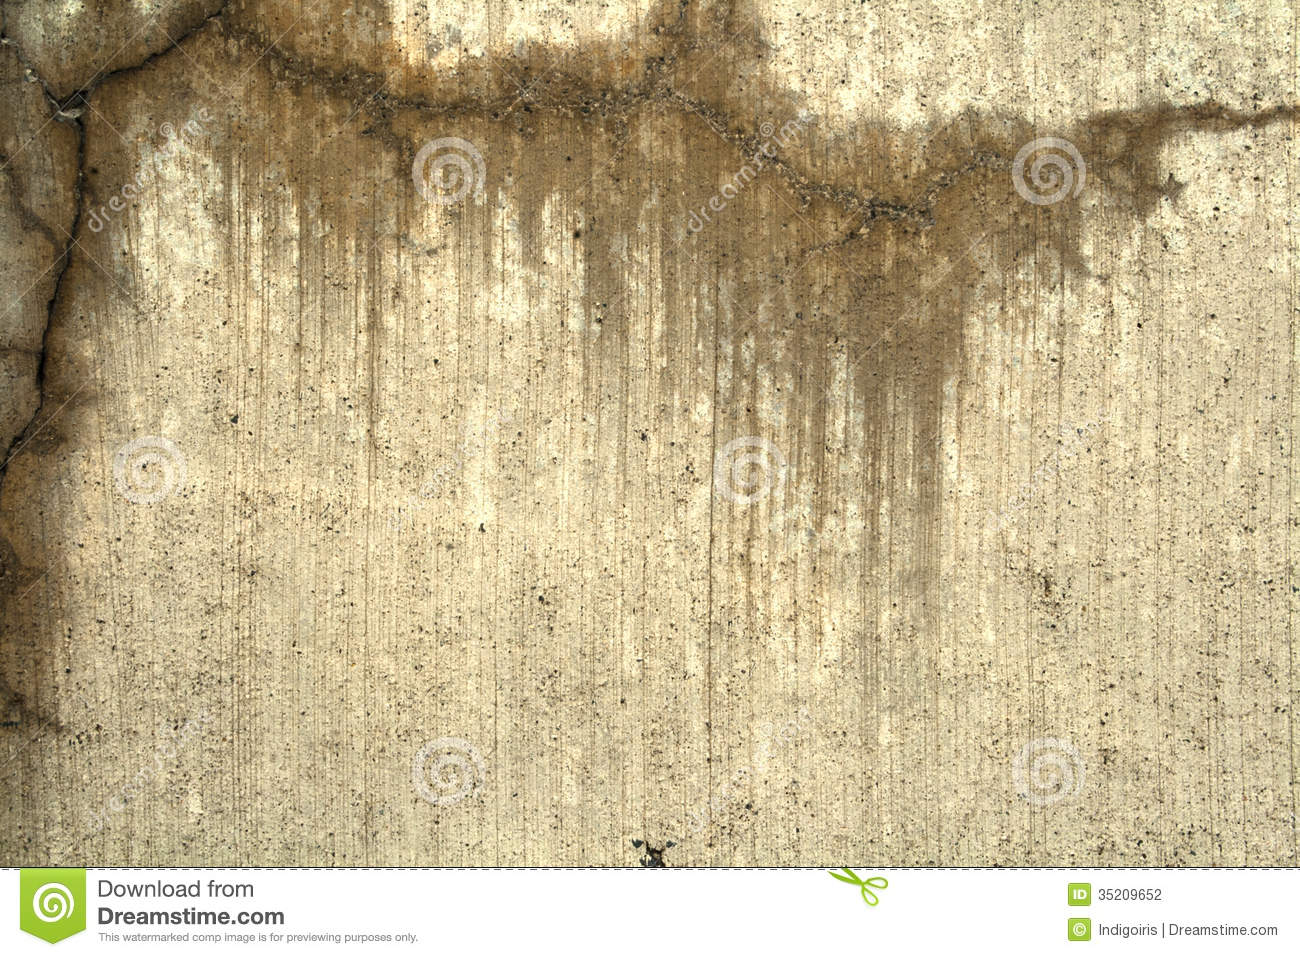 concrete wall stained from water seepage through cracks